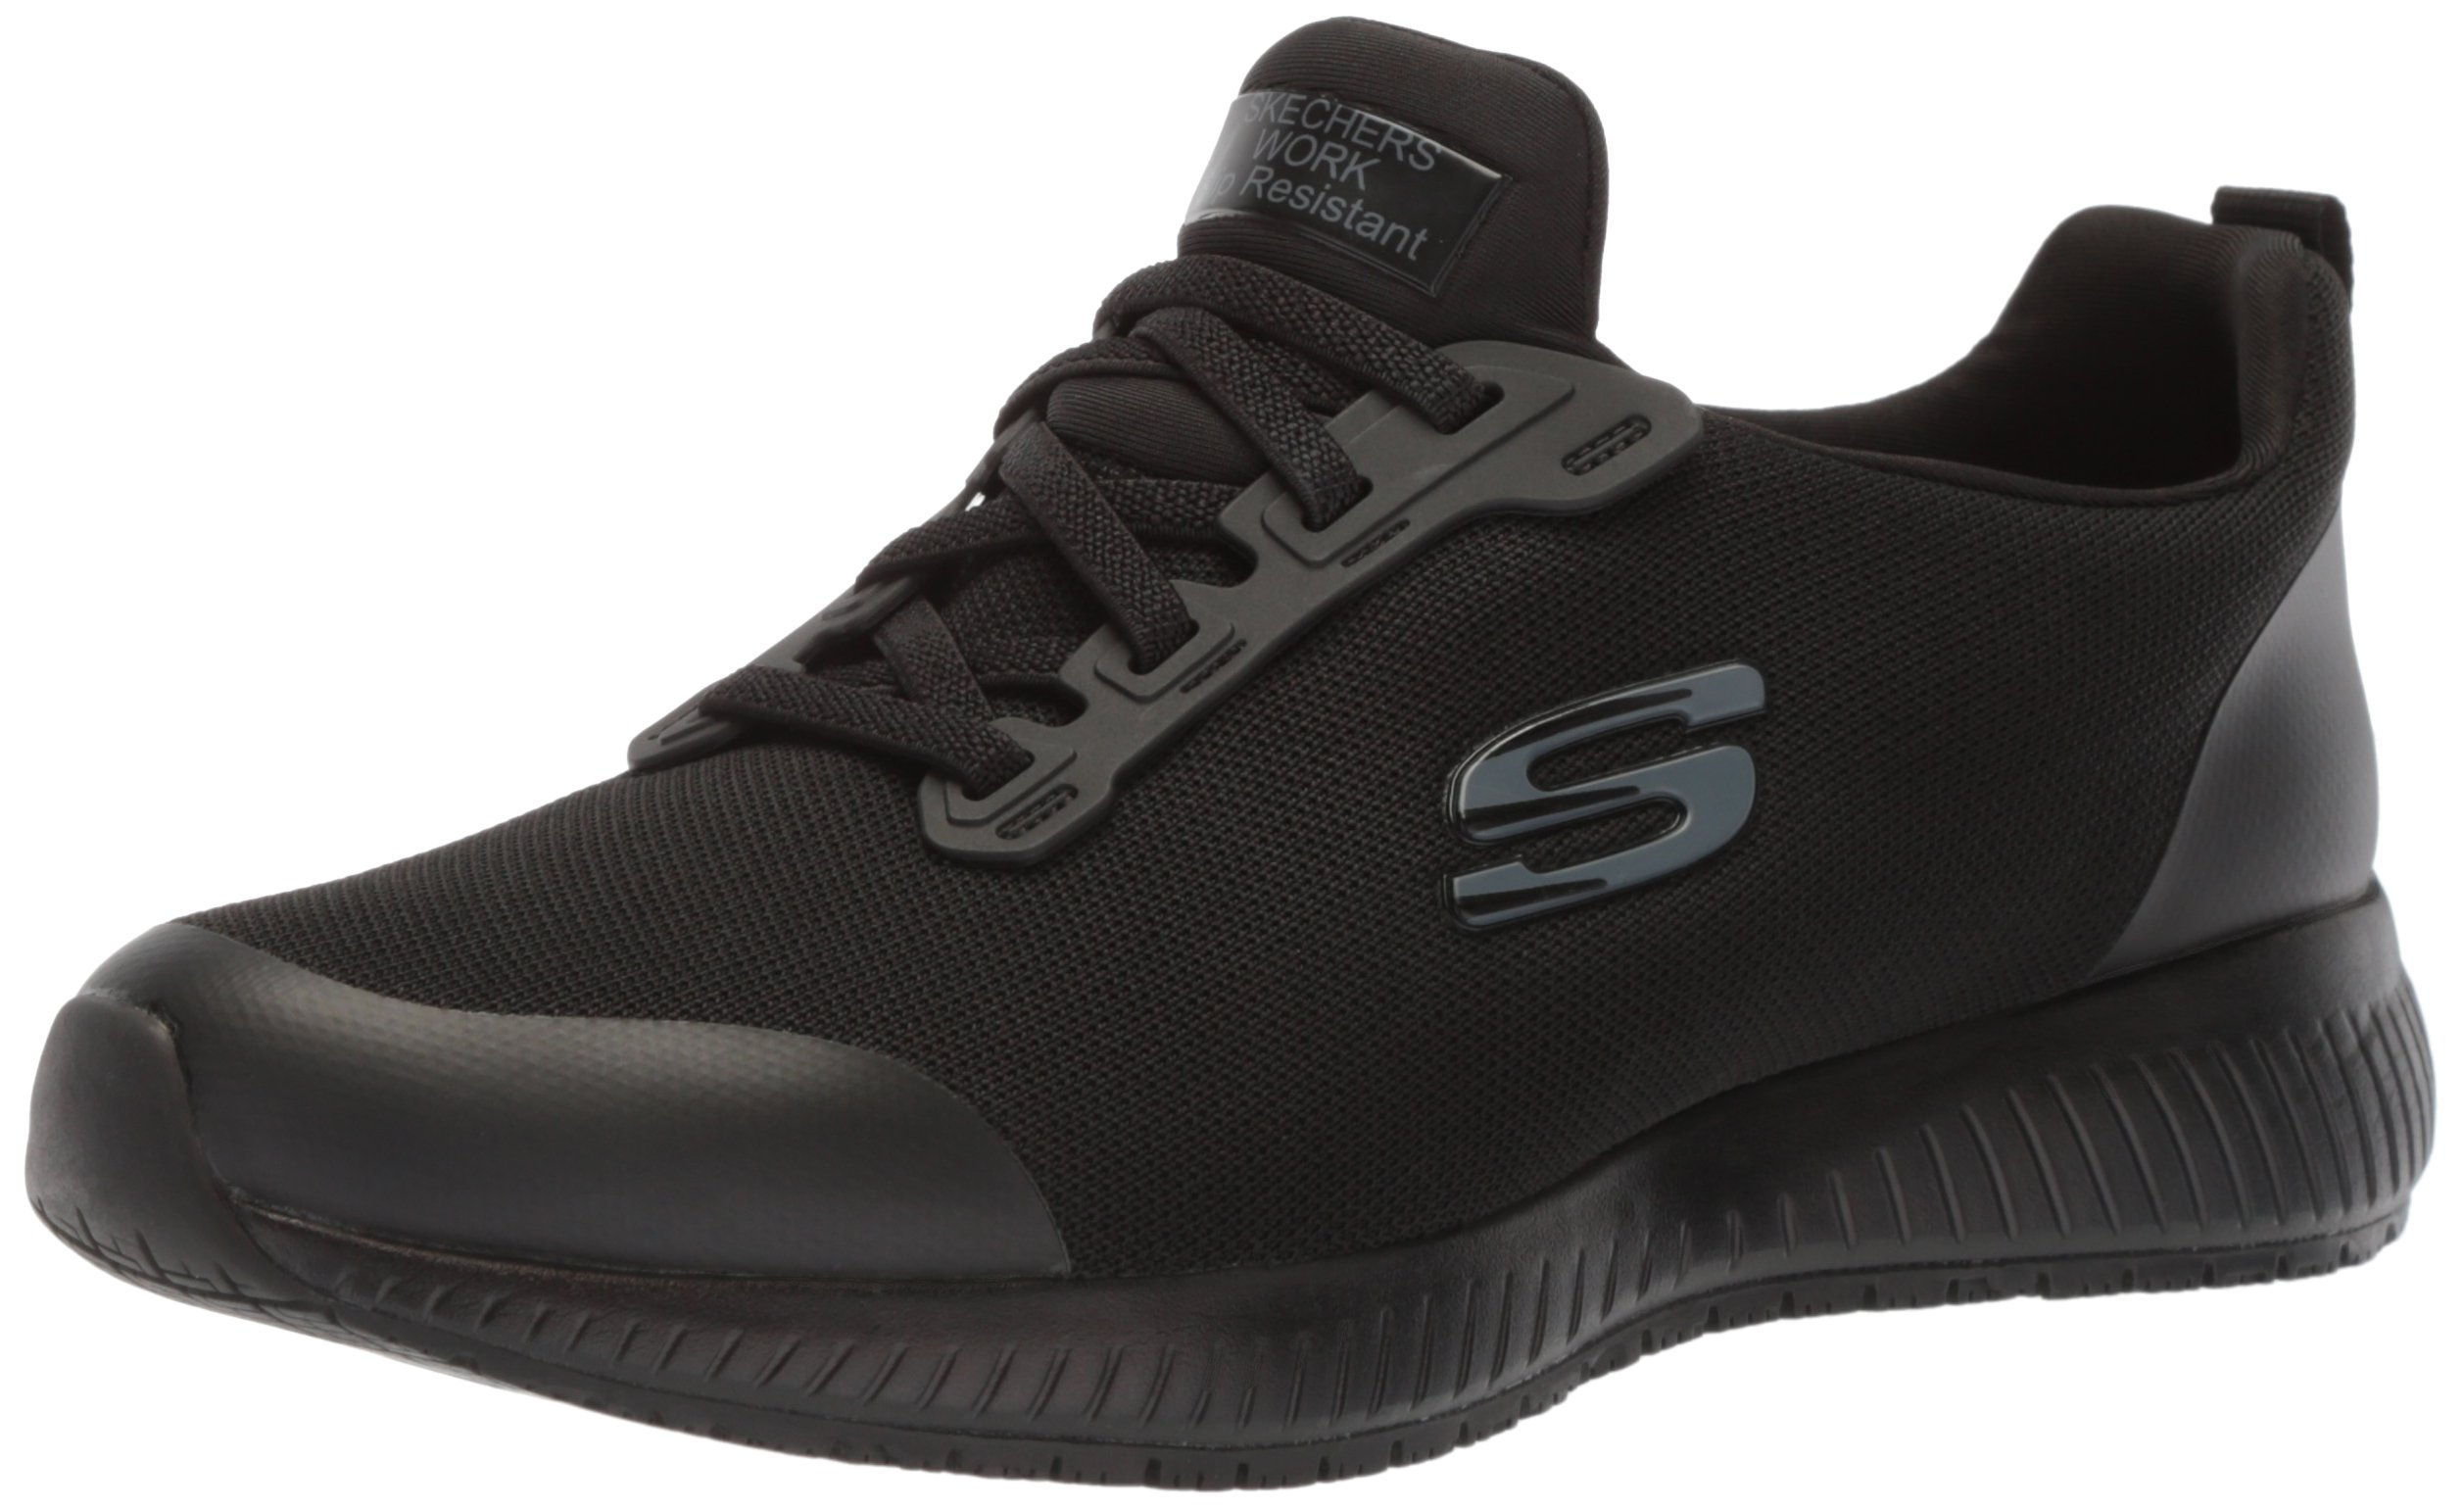 Skechers for Work Women's Squad SR Food Service Shoe, black flat knit, 8 M US by Skechers